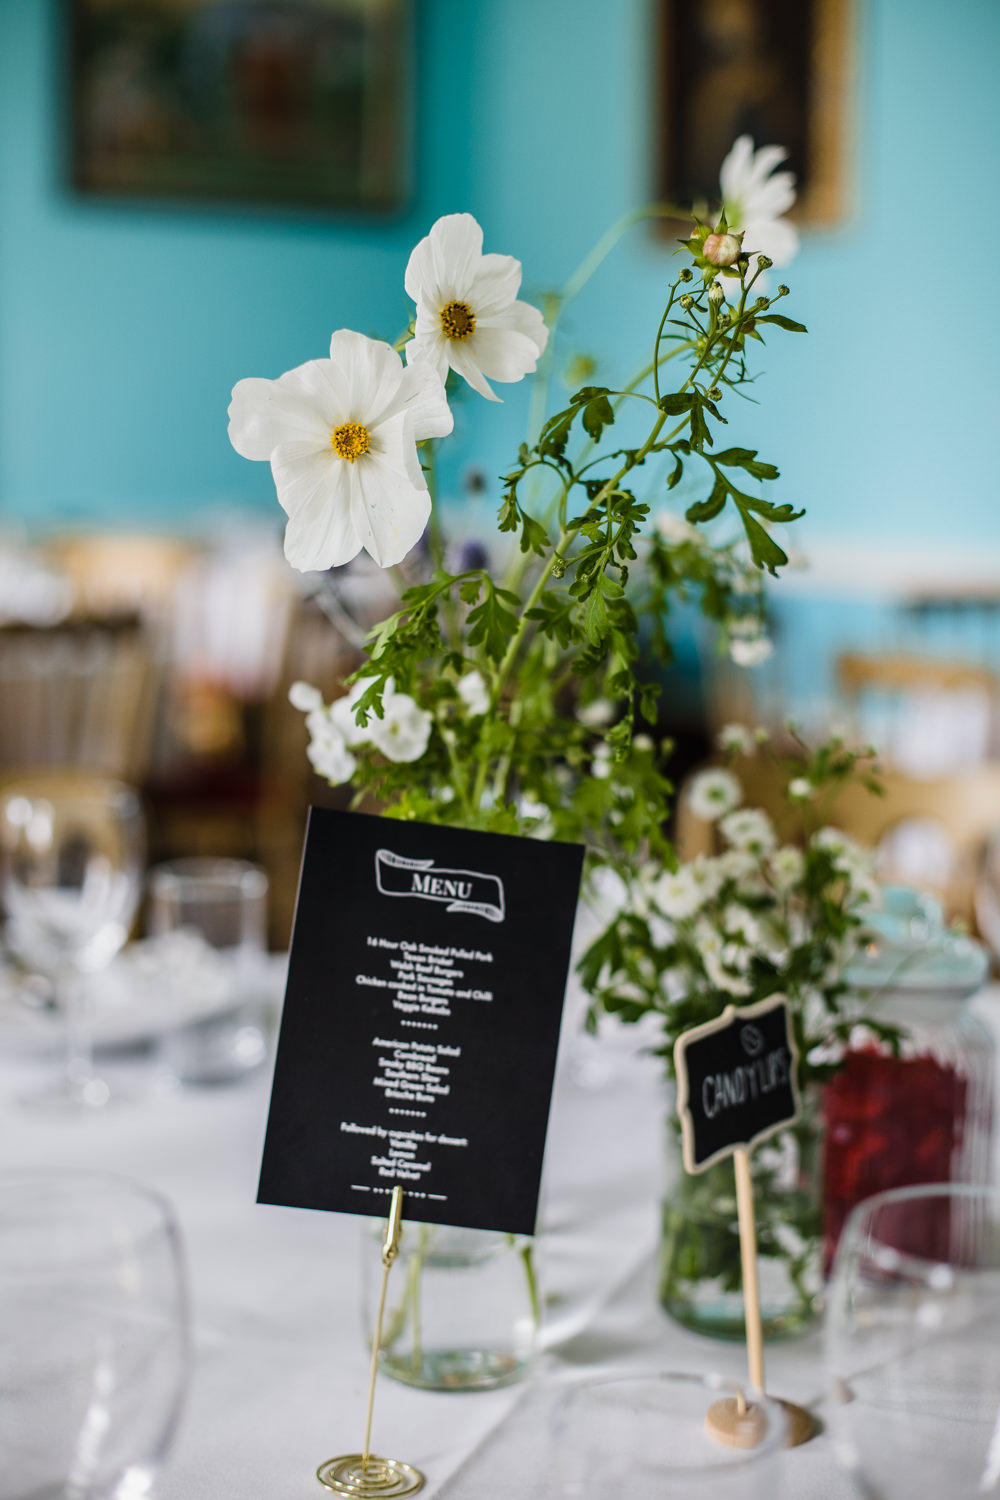 White Green Table Flowers Centrepicece Chalk Board Menu Fun Laughter Relaxed Wedding Chris Barber Photography